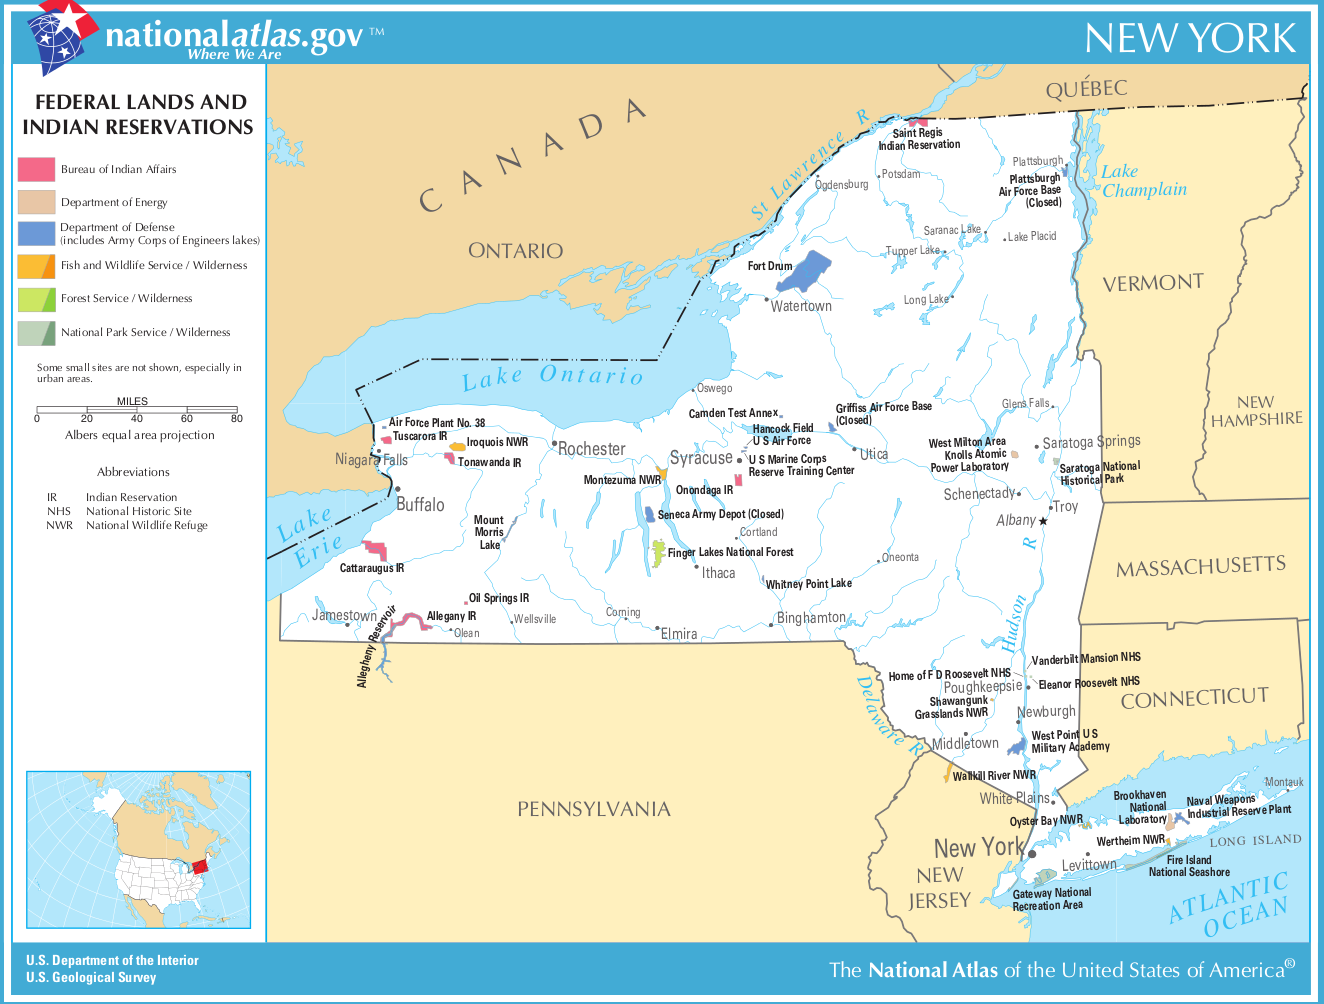 Map Of New York Indian Reservations.Map Of New York Federal Lands And Indian Reservations